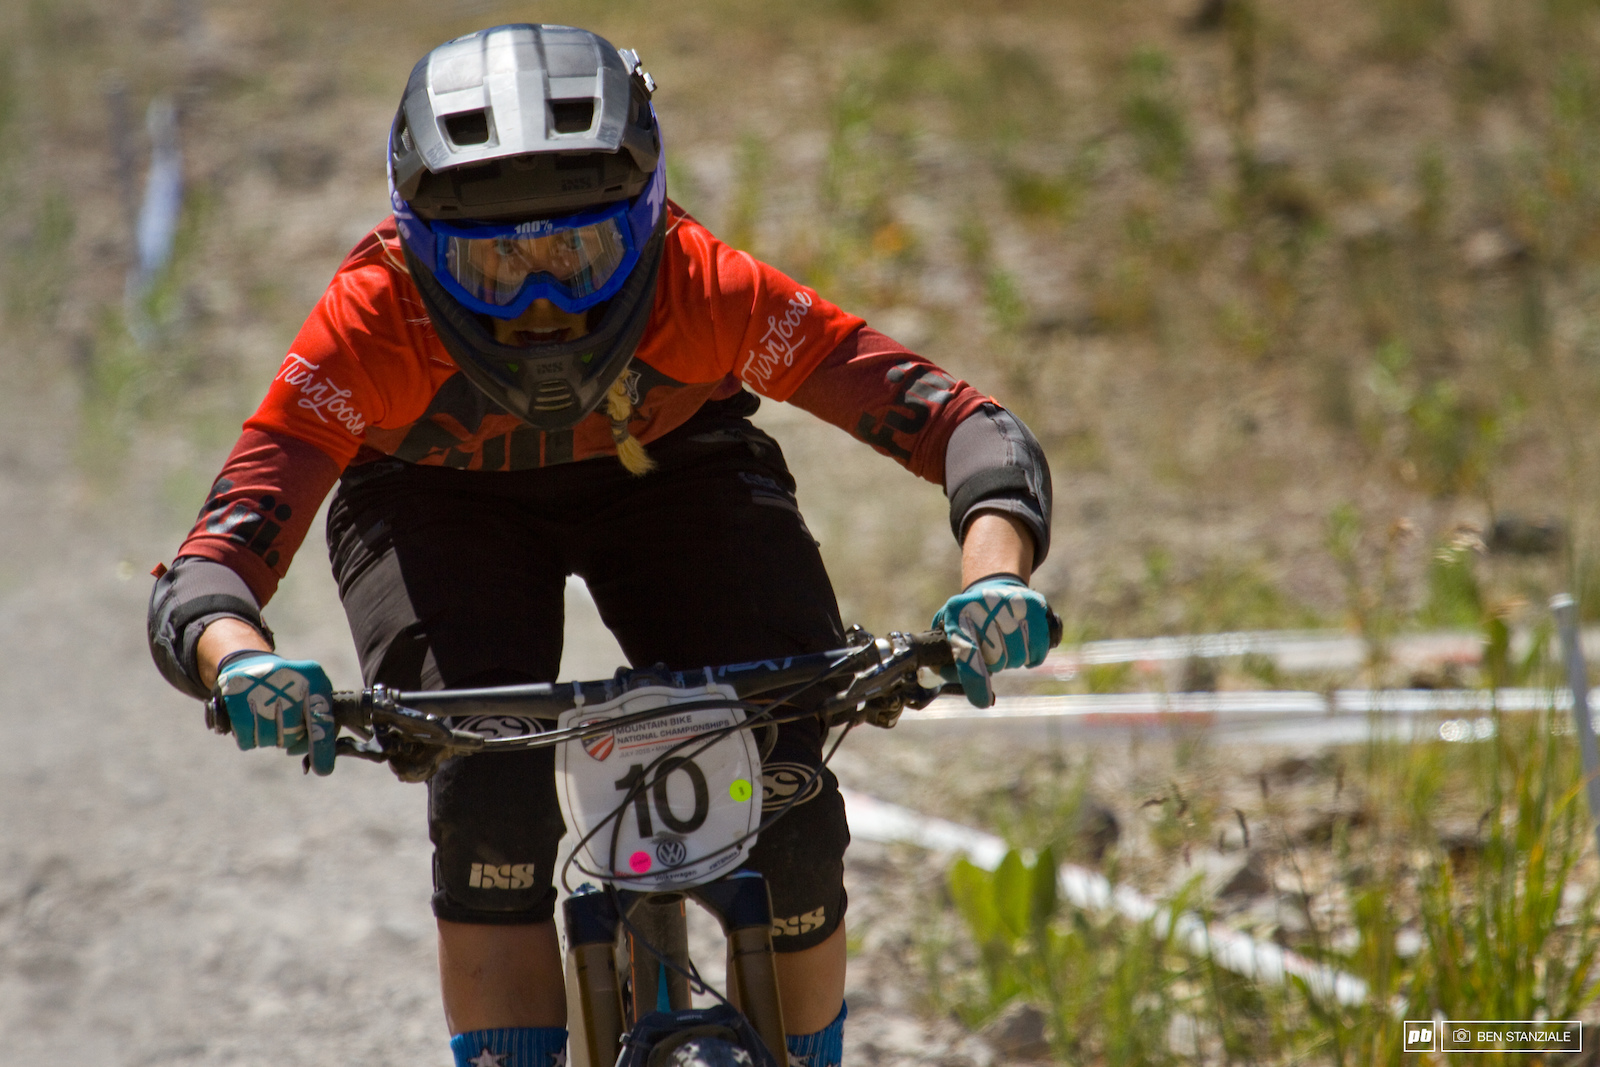 Lauren Gregg coming into the finish of 4 long stages. 3rd place for Lauren Gregg.